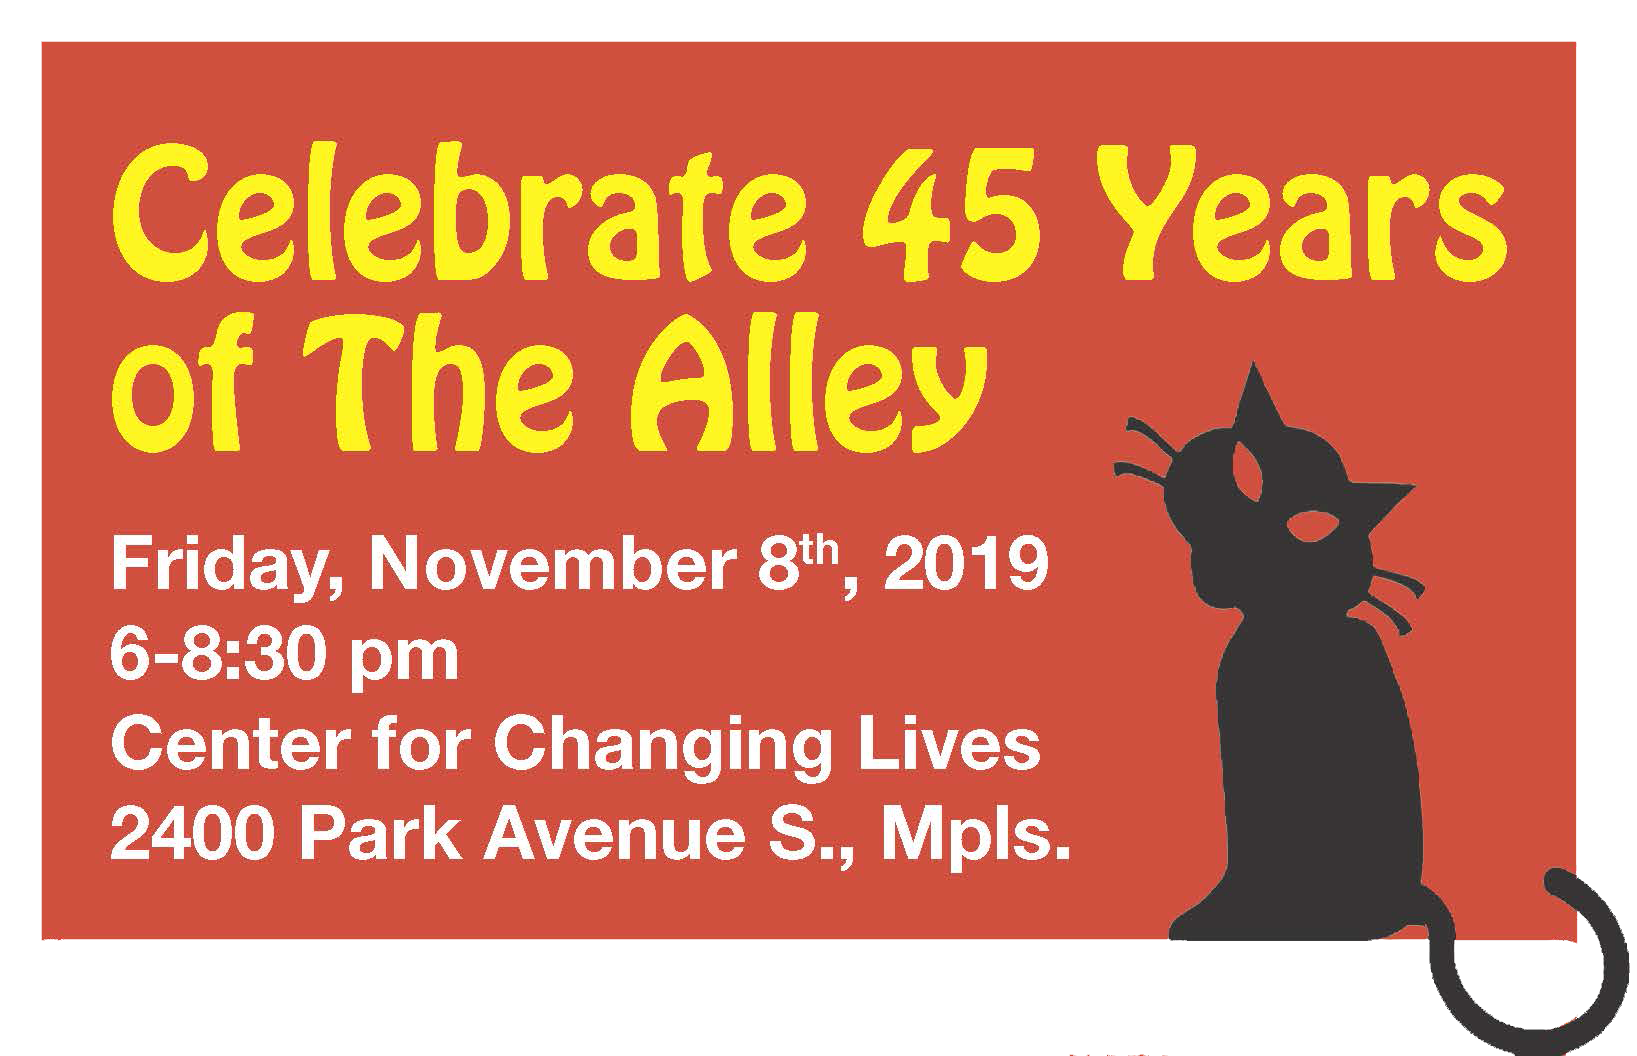 Celebrate 45 Years of The Alley